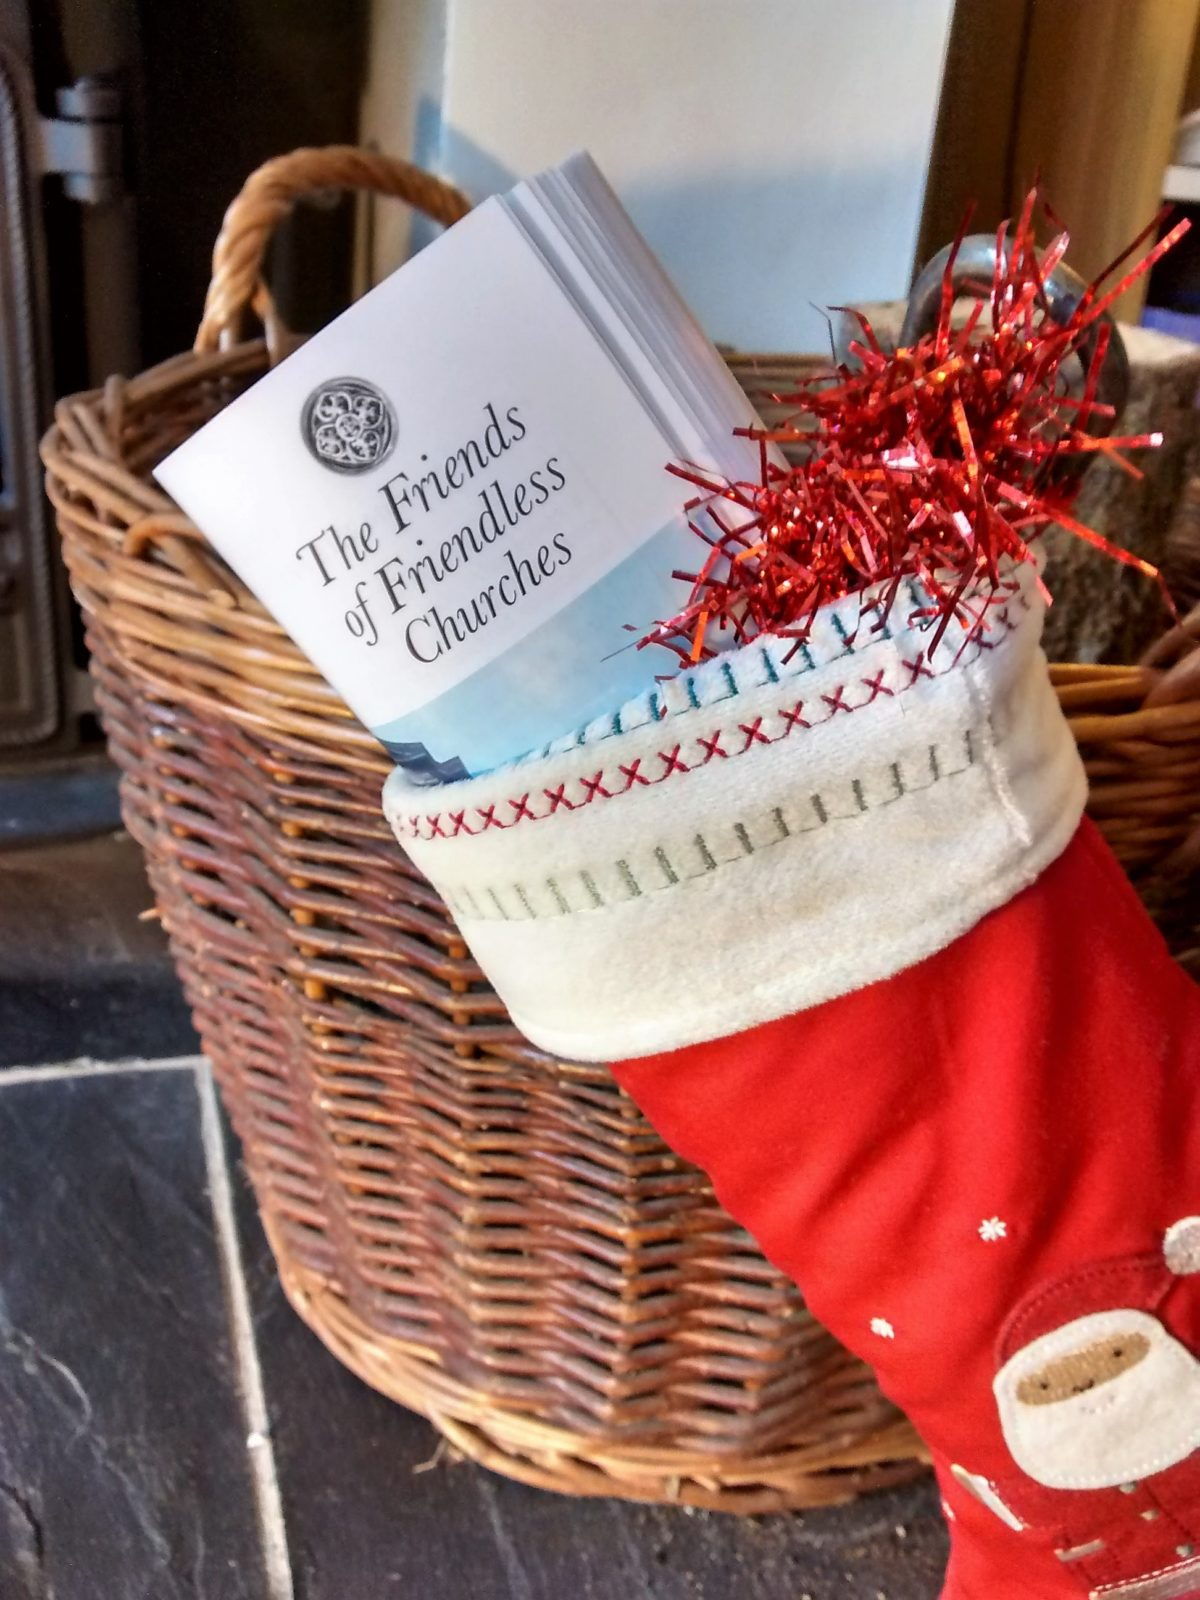 A Unique Christmas Gift - Friends of Friendless Churches